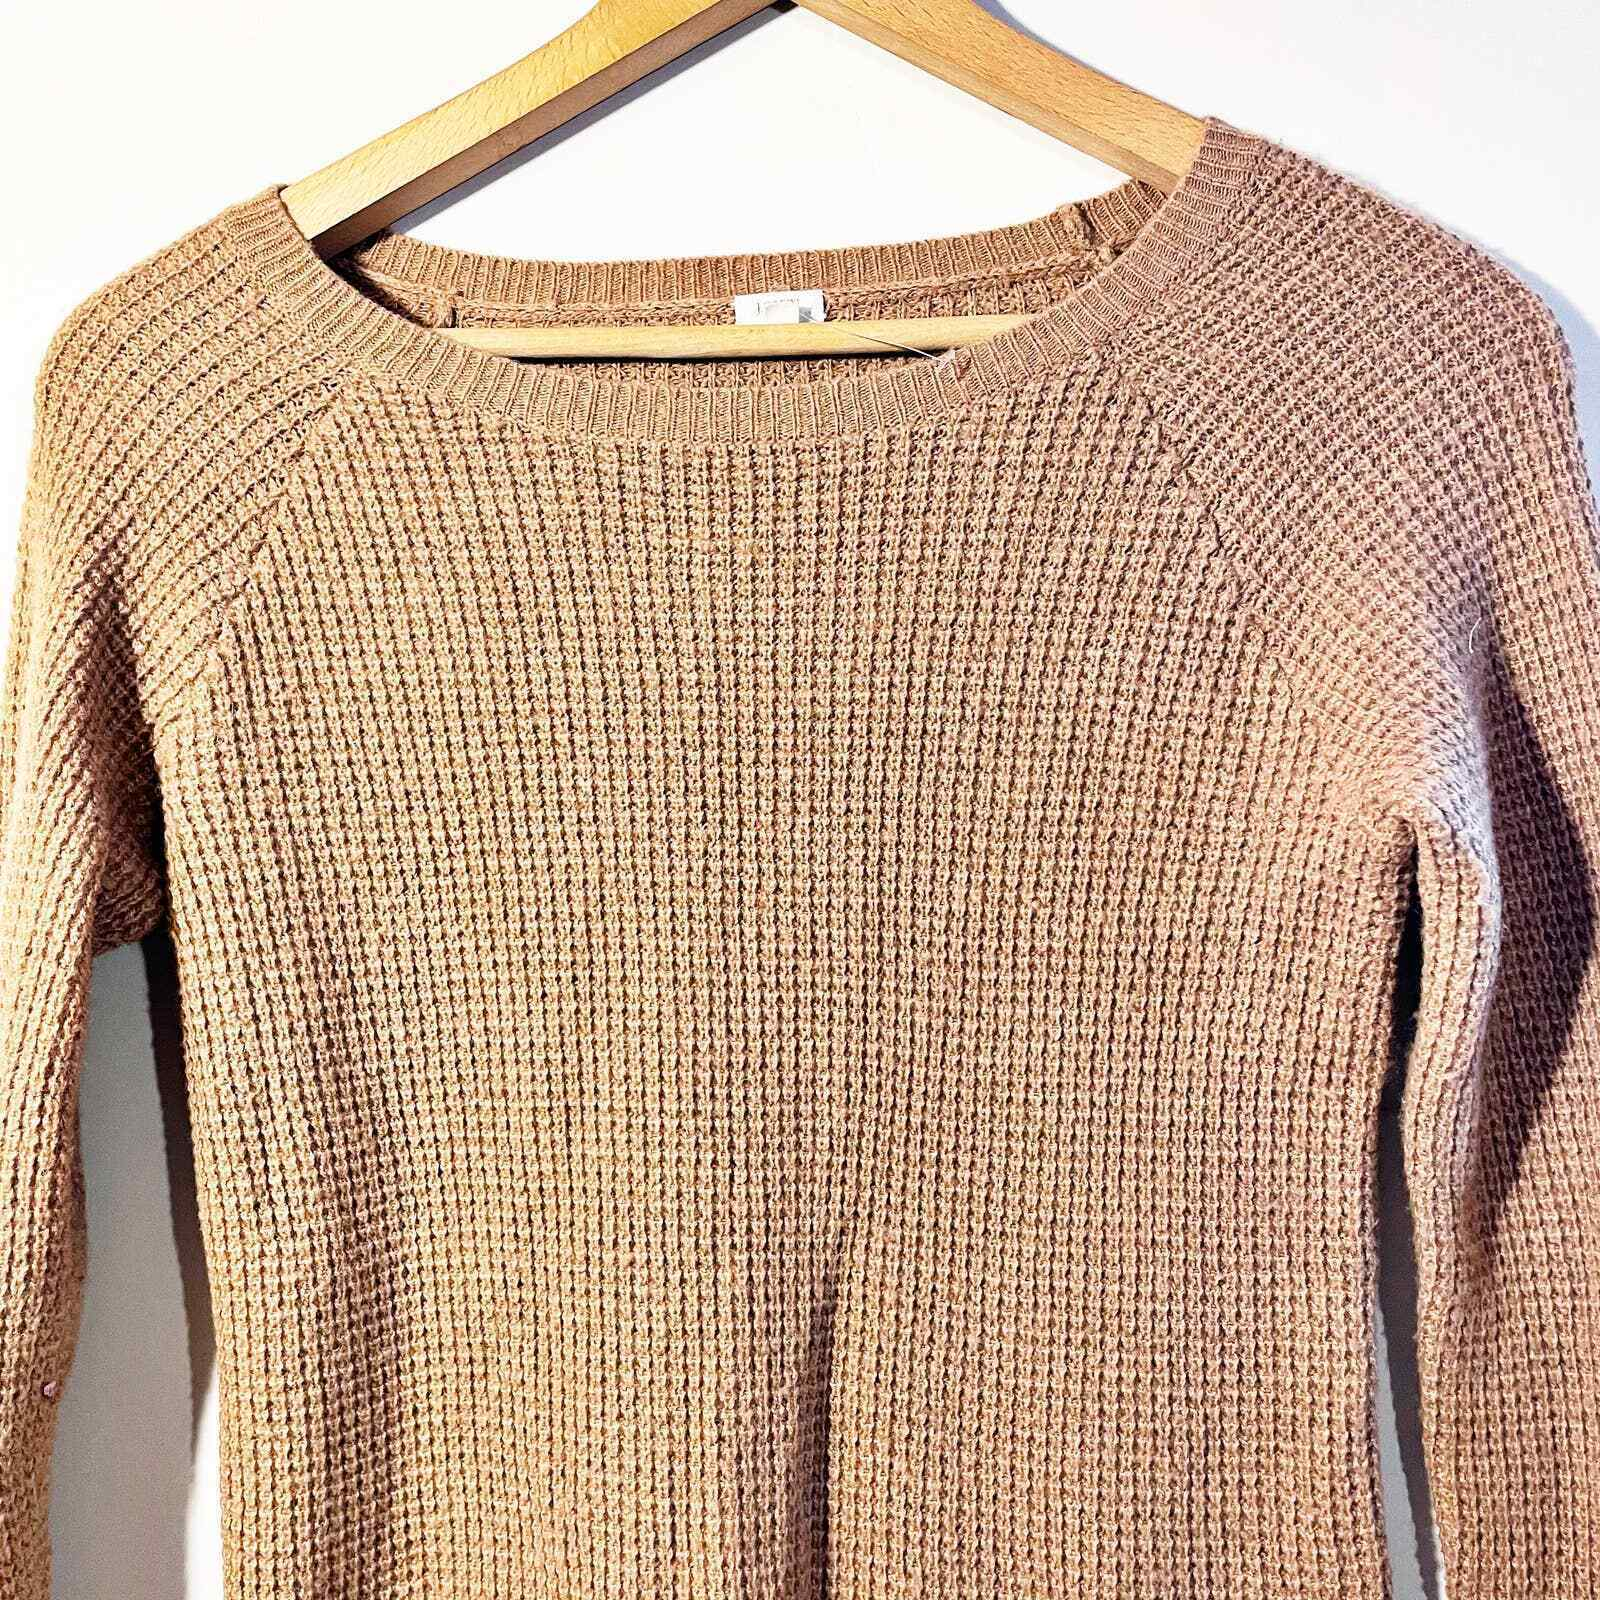 J.Crew Waffle Knit Textured Sweater Small - image 4